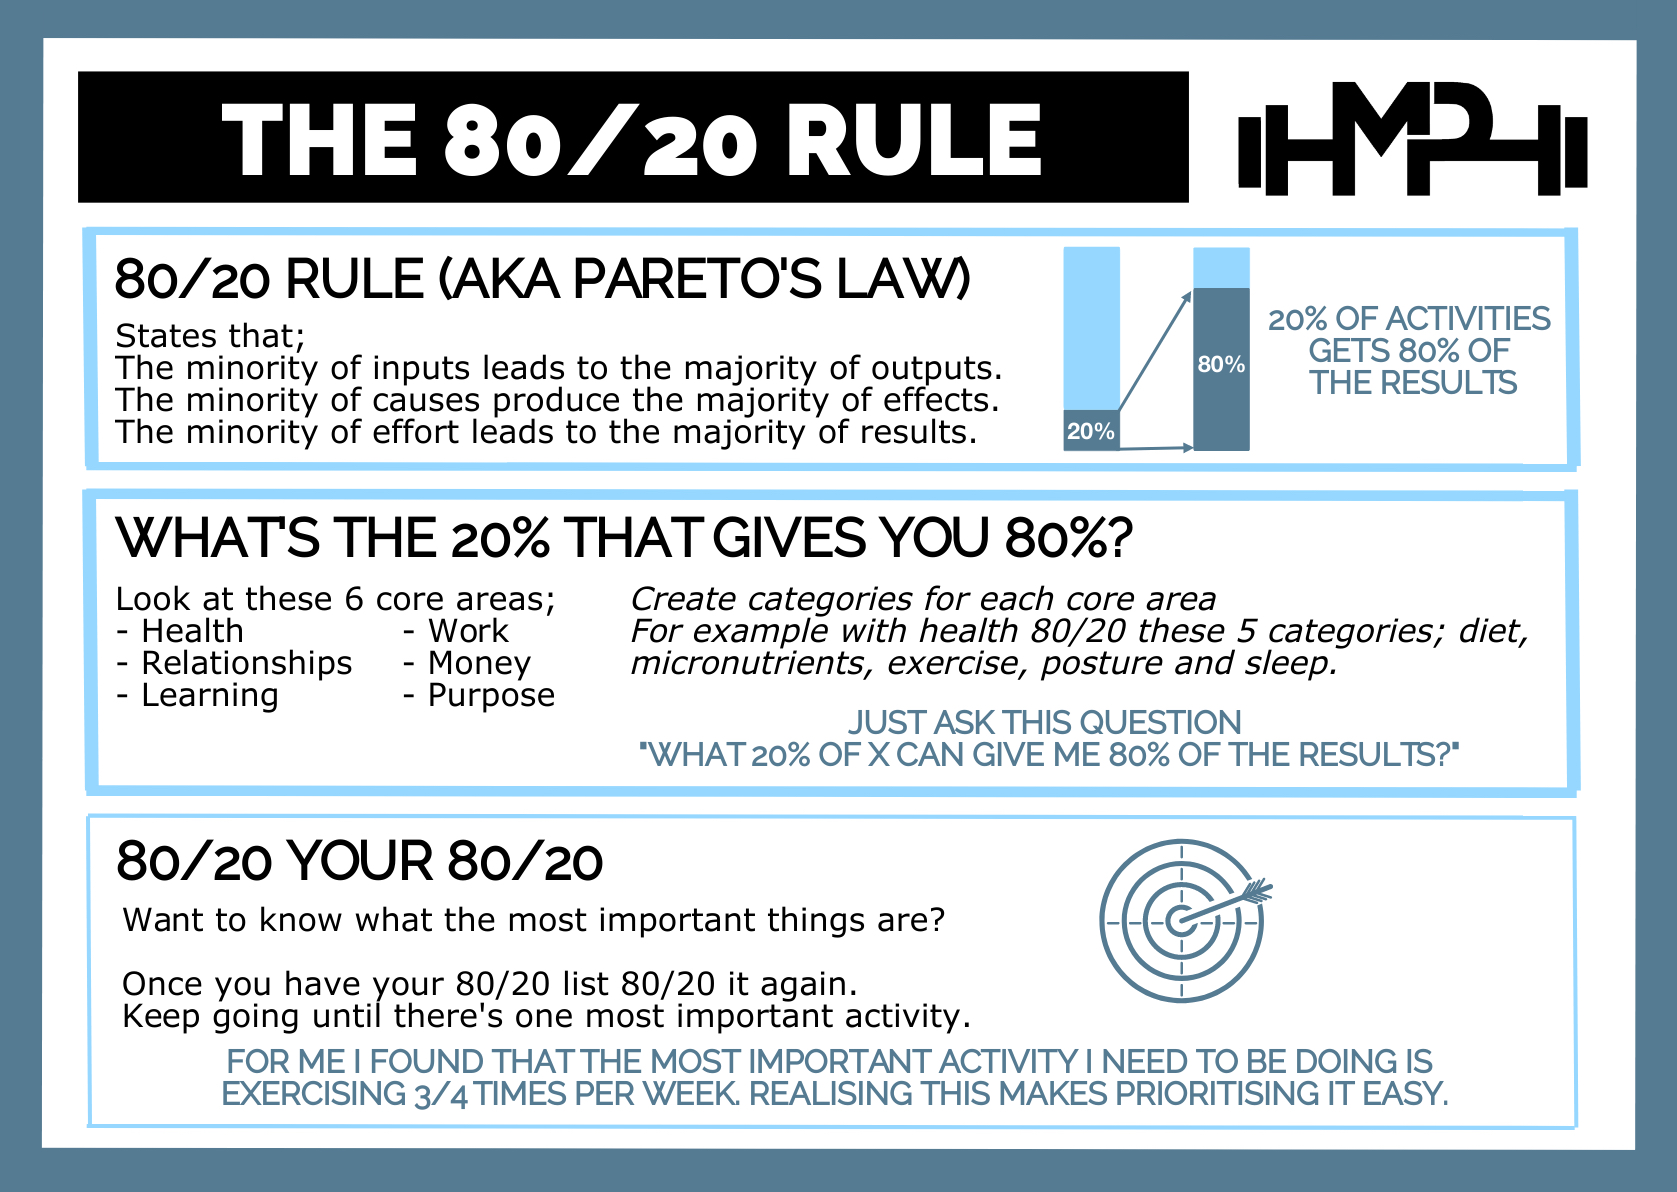 THE 8020 RULE 2 new fonts.jpg